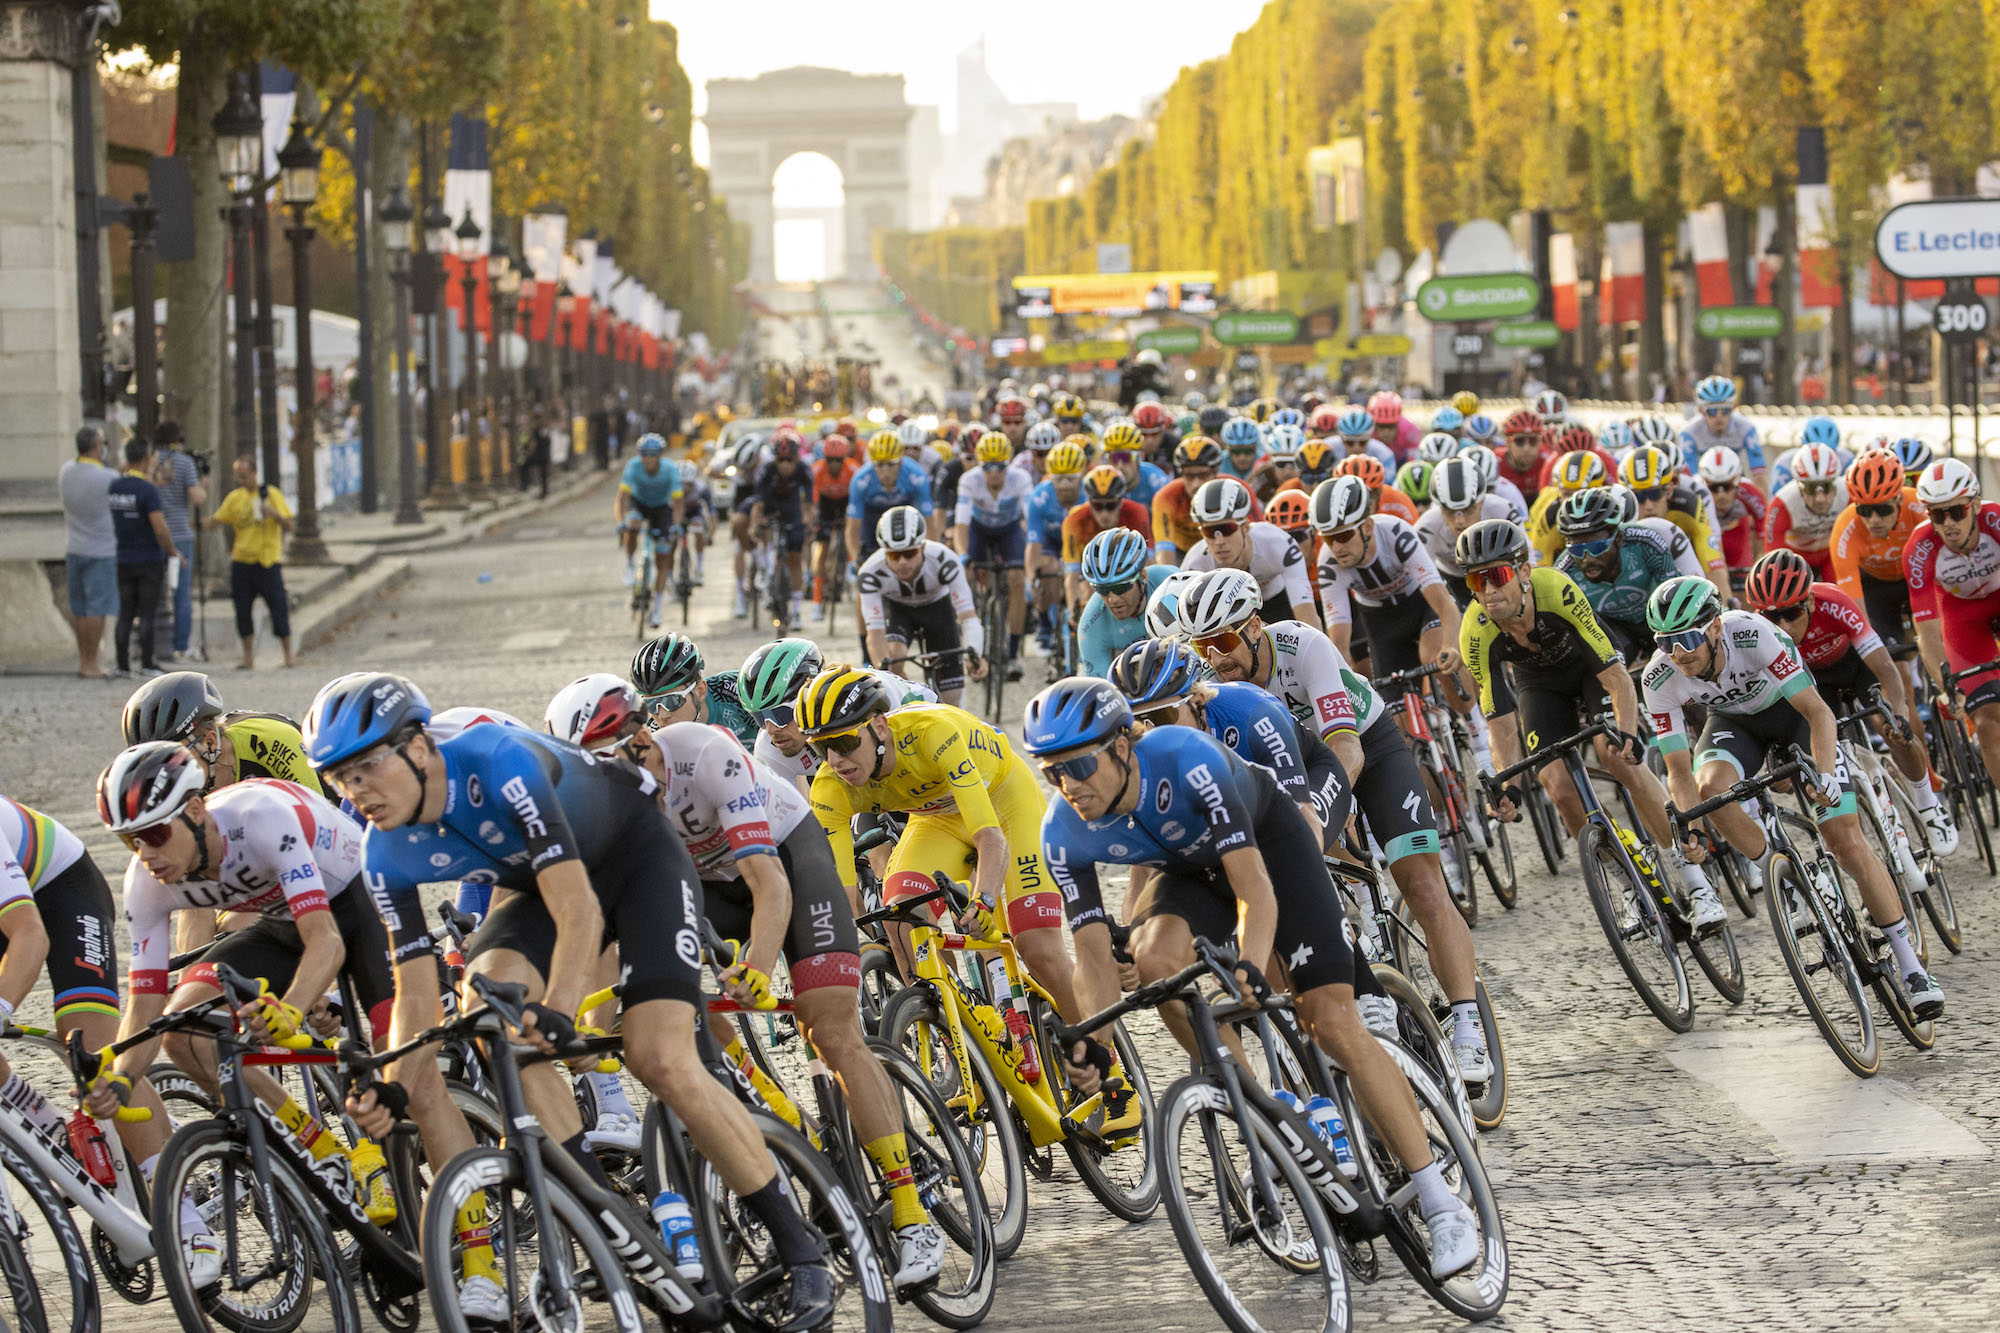 The Tour de France is one of the most watched sports world wide.